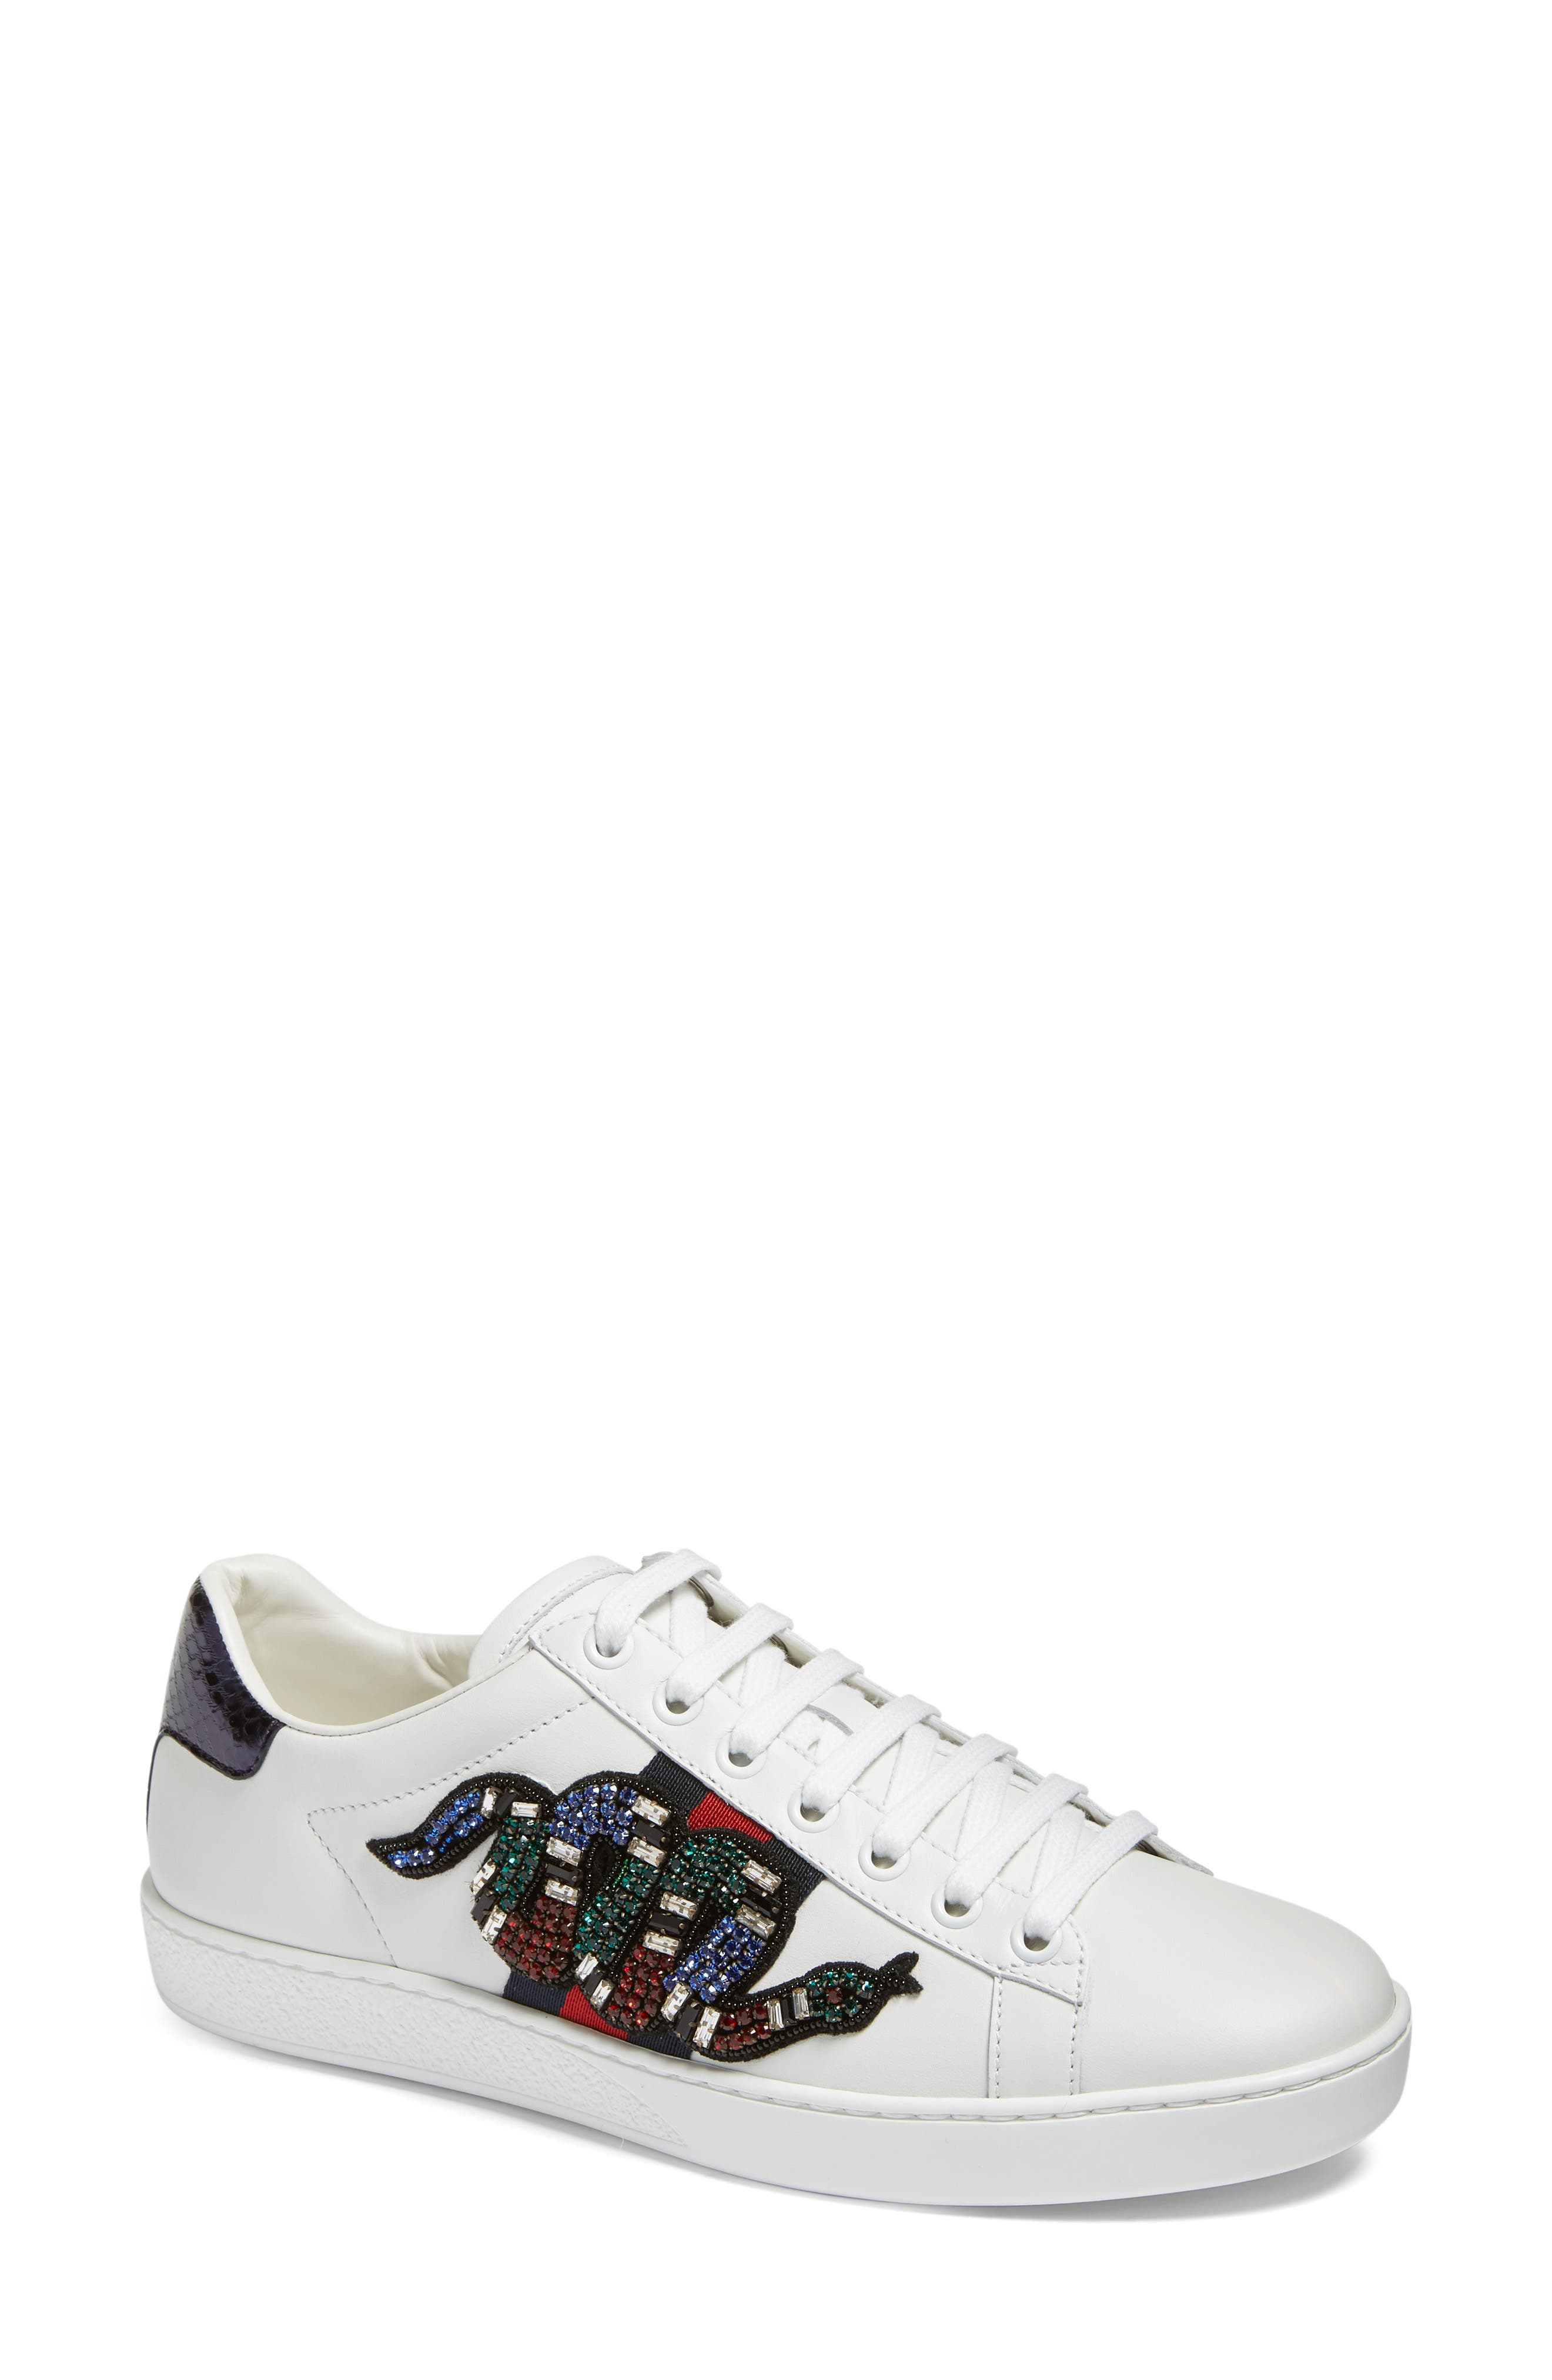 New Age Snake Embellished Sneaker,                             Main thumbnail 1, color,                             100